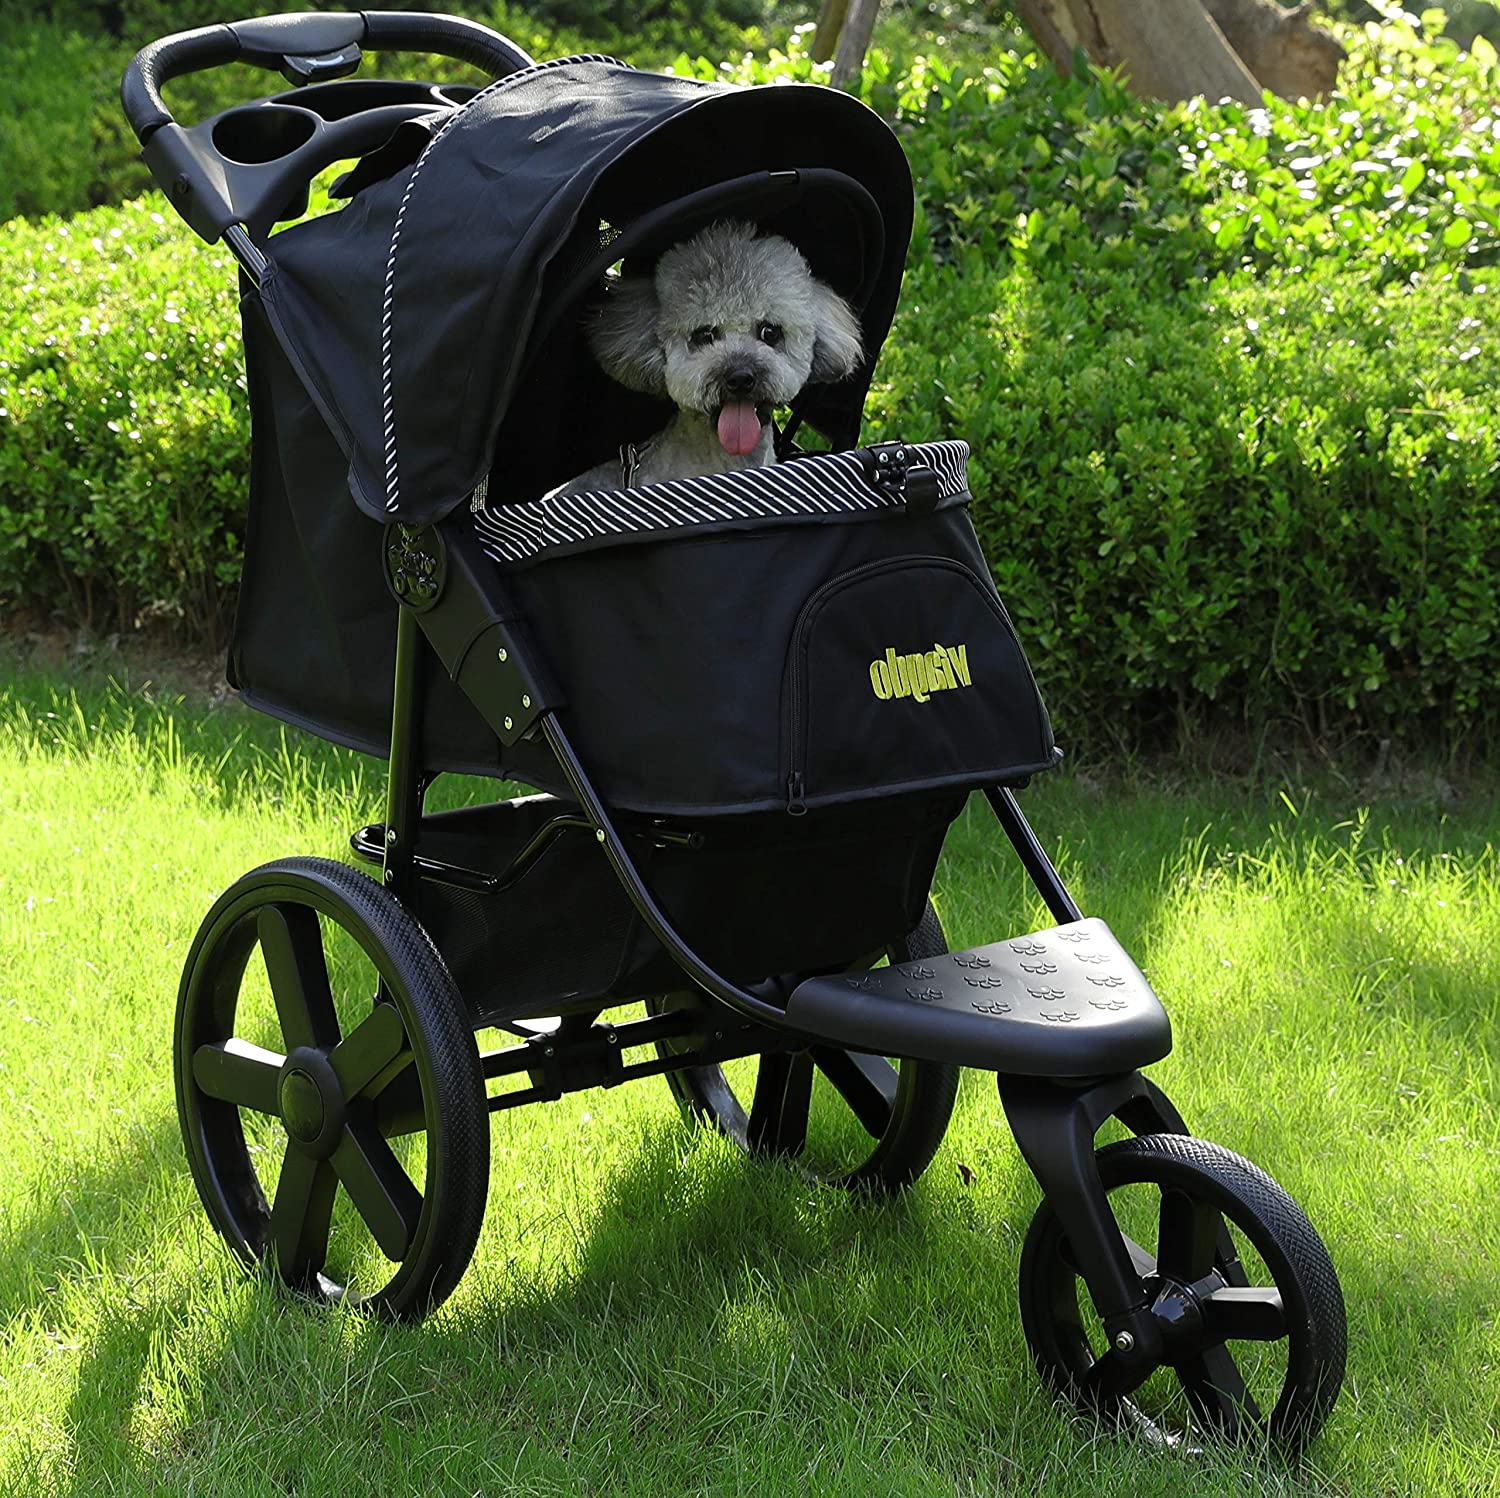 VIAGDO Luxury Dog Stroller Jogger for Dogs & Cats